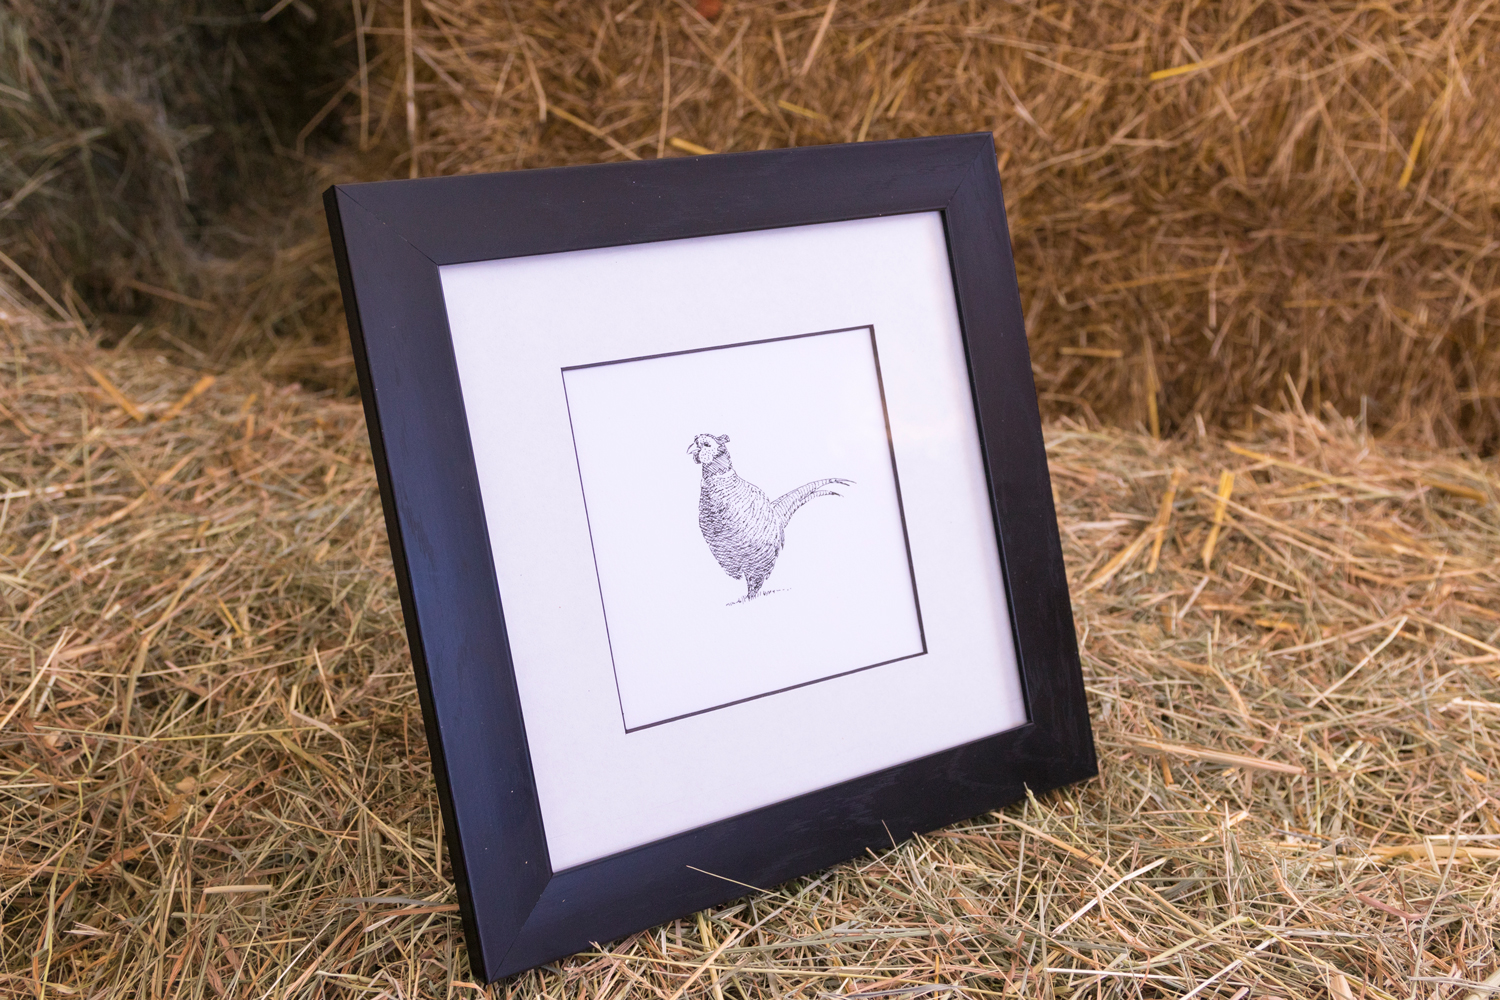 From The Oast, pheasant illustration by Derek Griffin